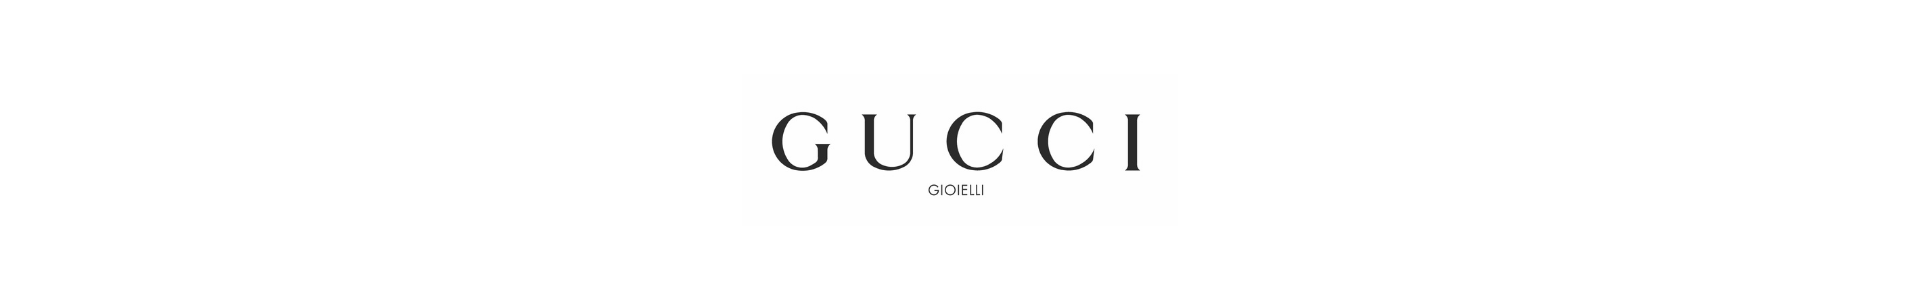 banner gucci jewelry shop online code discount sale codice sconto